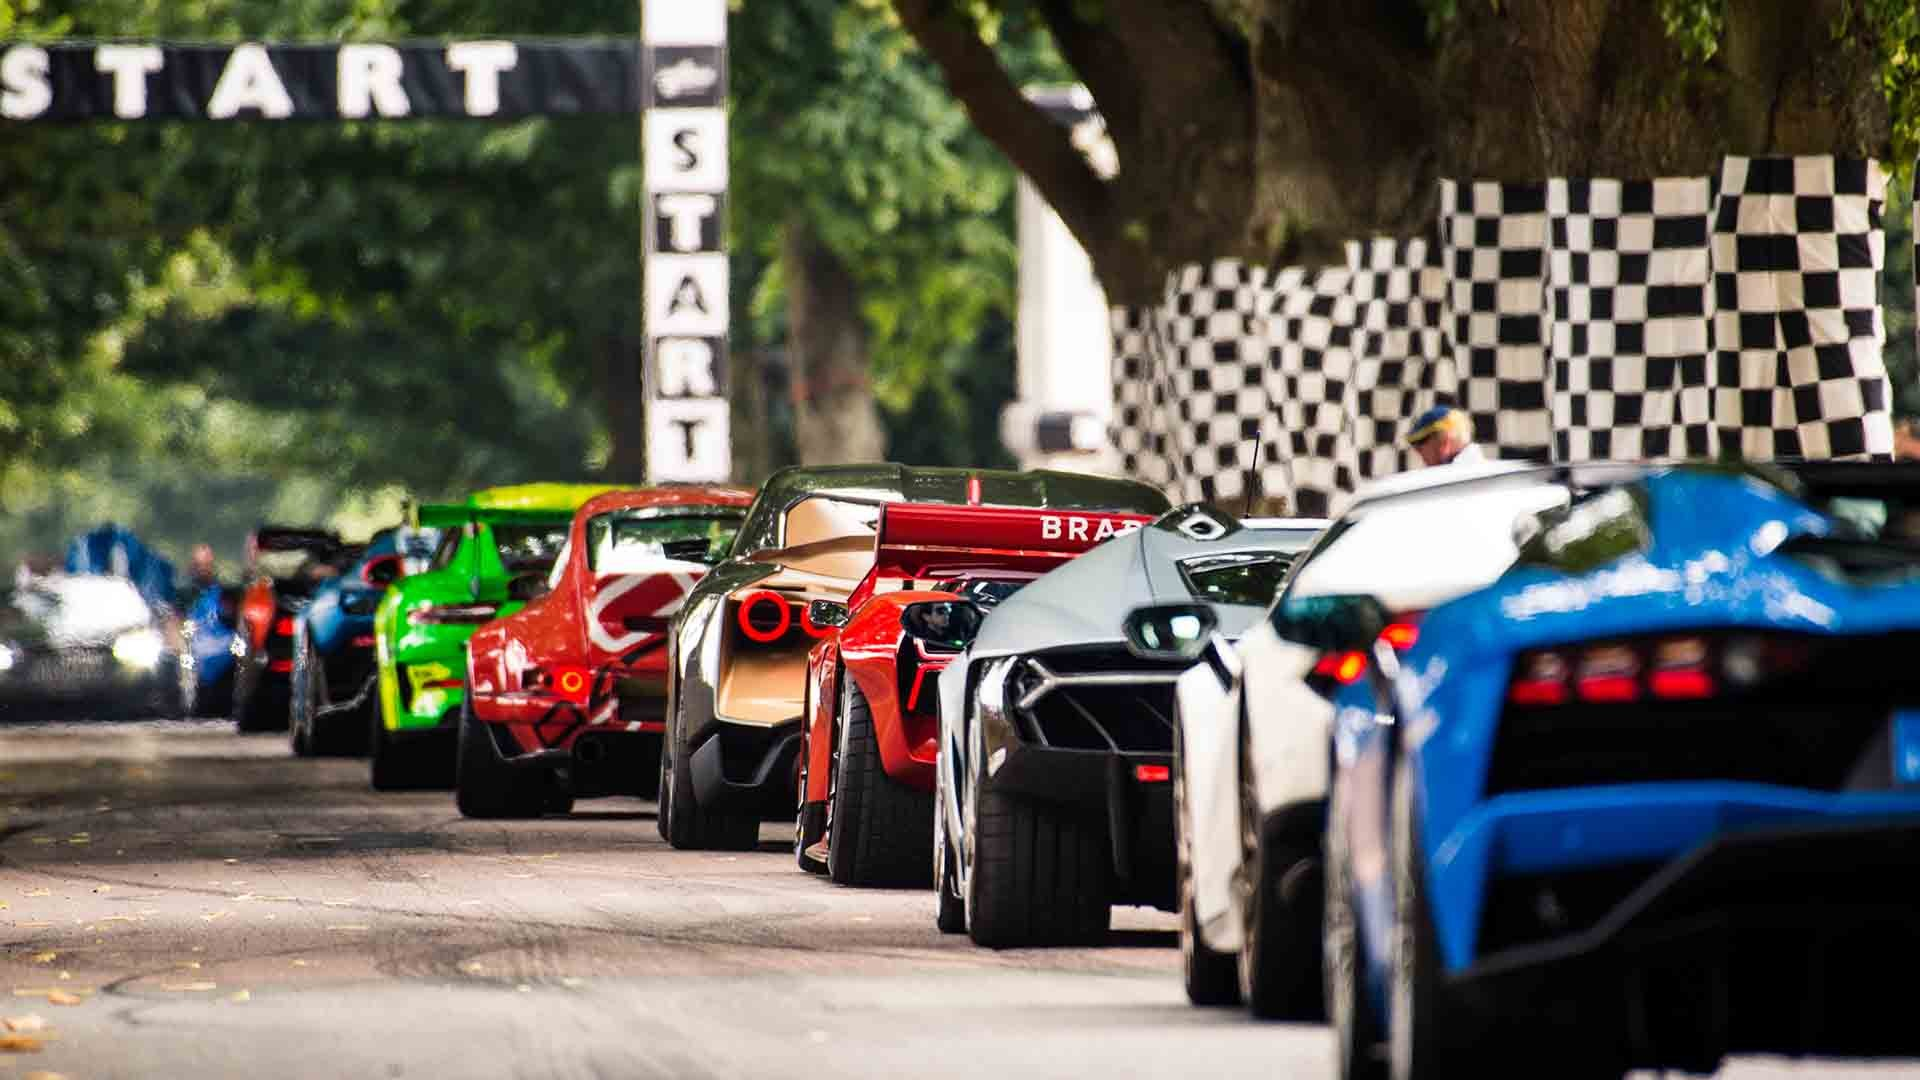 Need For Speed World Cars Wallpaper Goodwood Festival Of Speed 2019 All You Need To Know